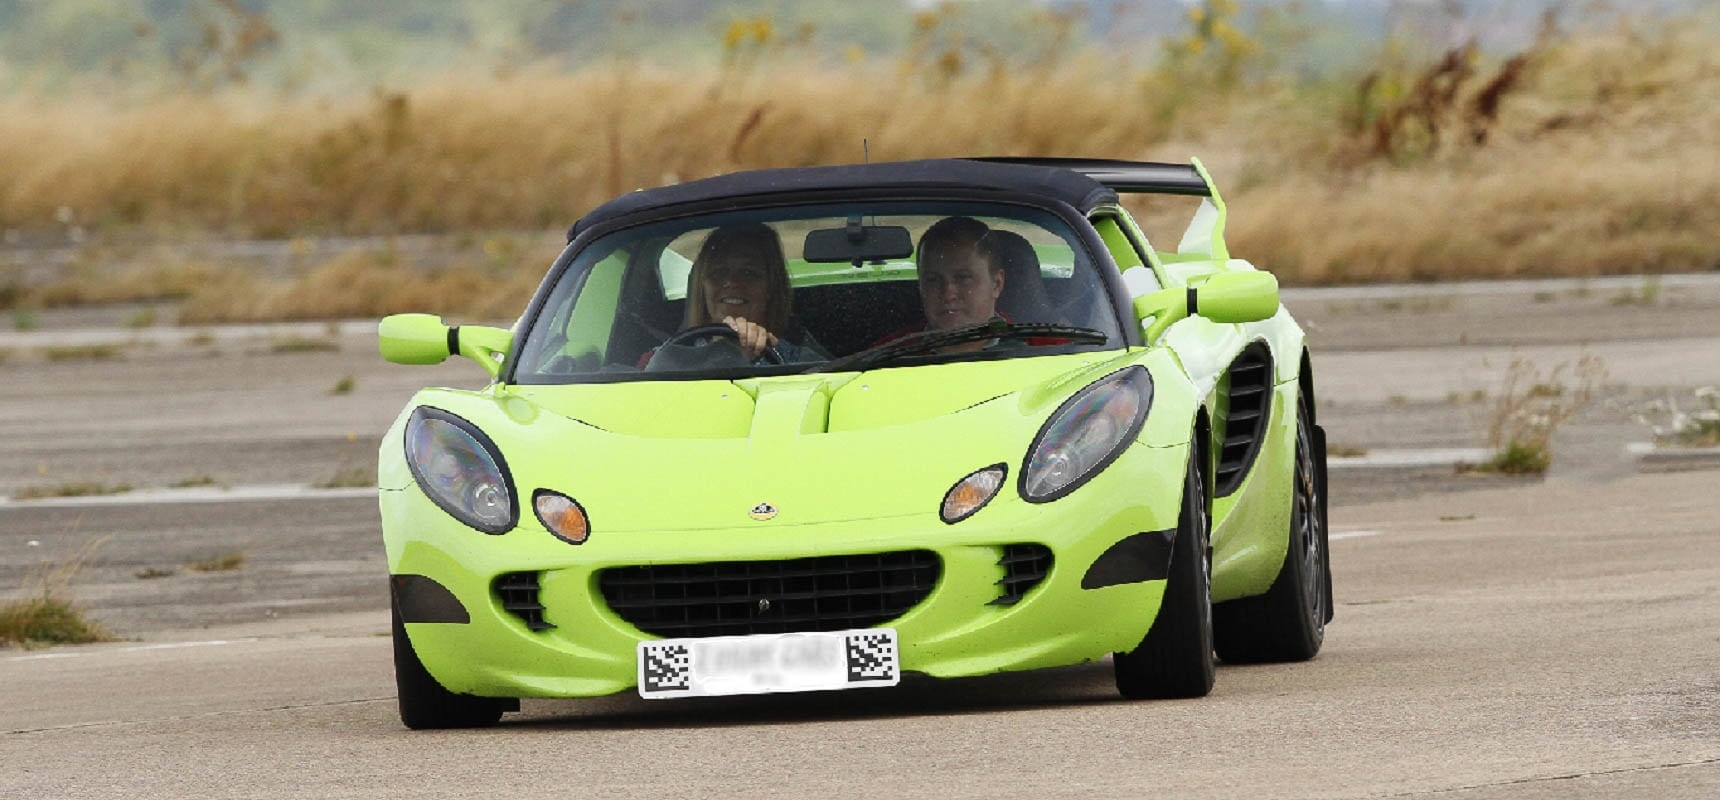 Lotus Thrill Ride Driving Experience - Oxfordshire-2